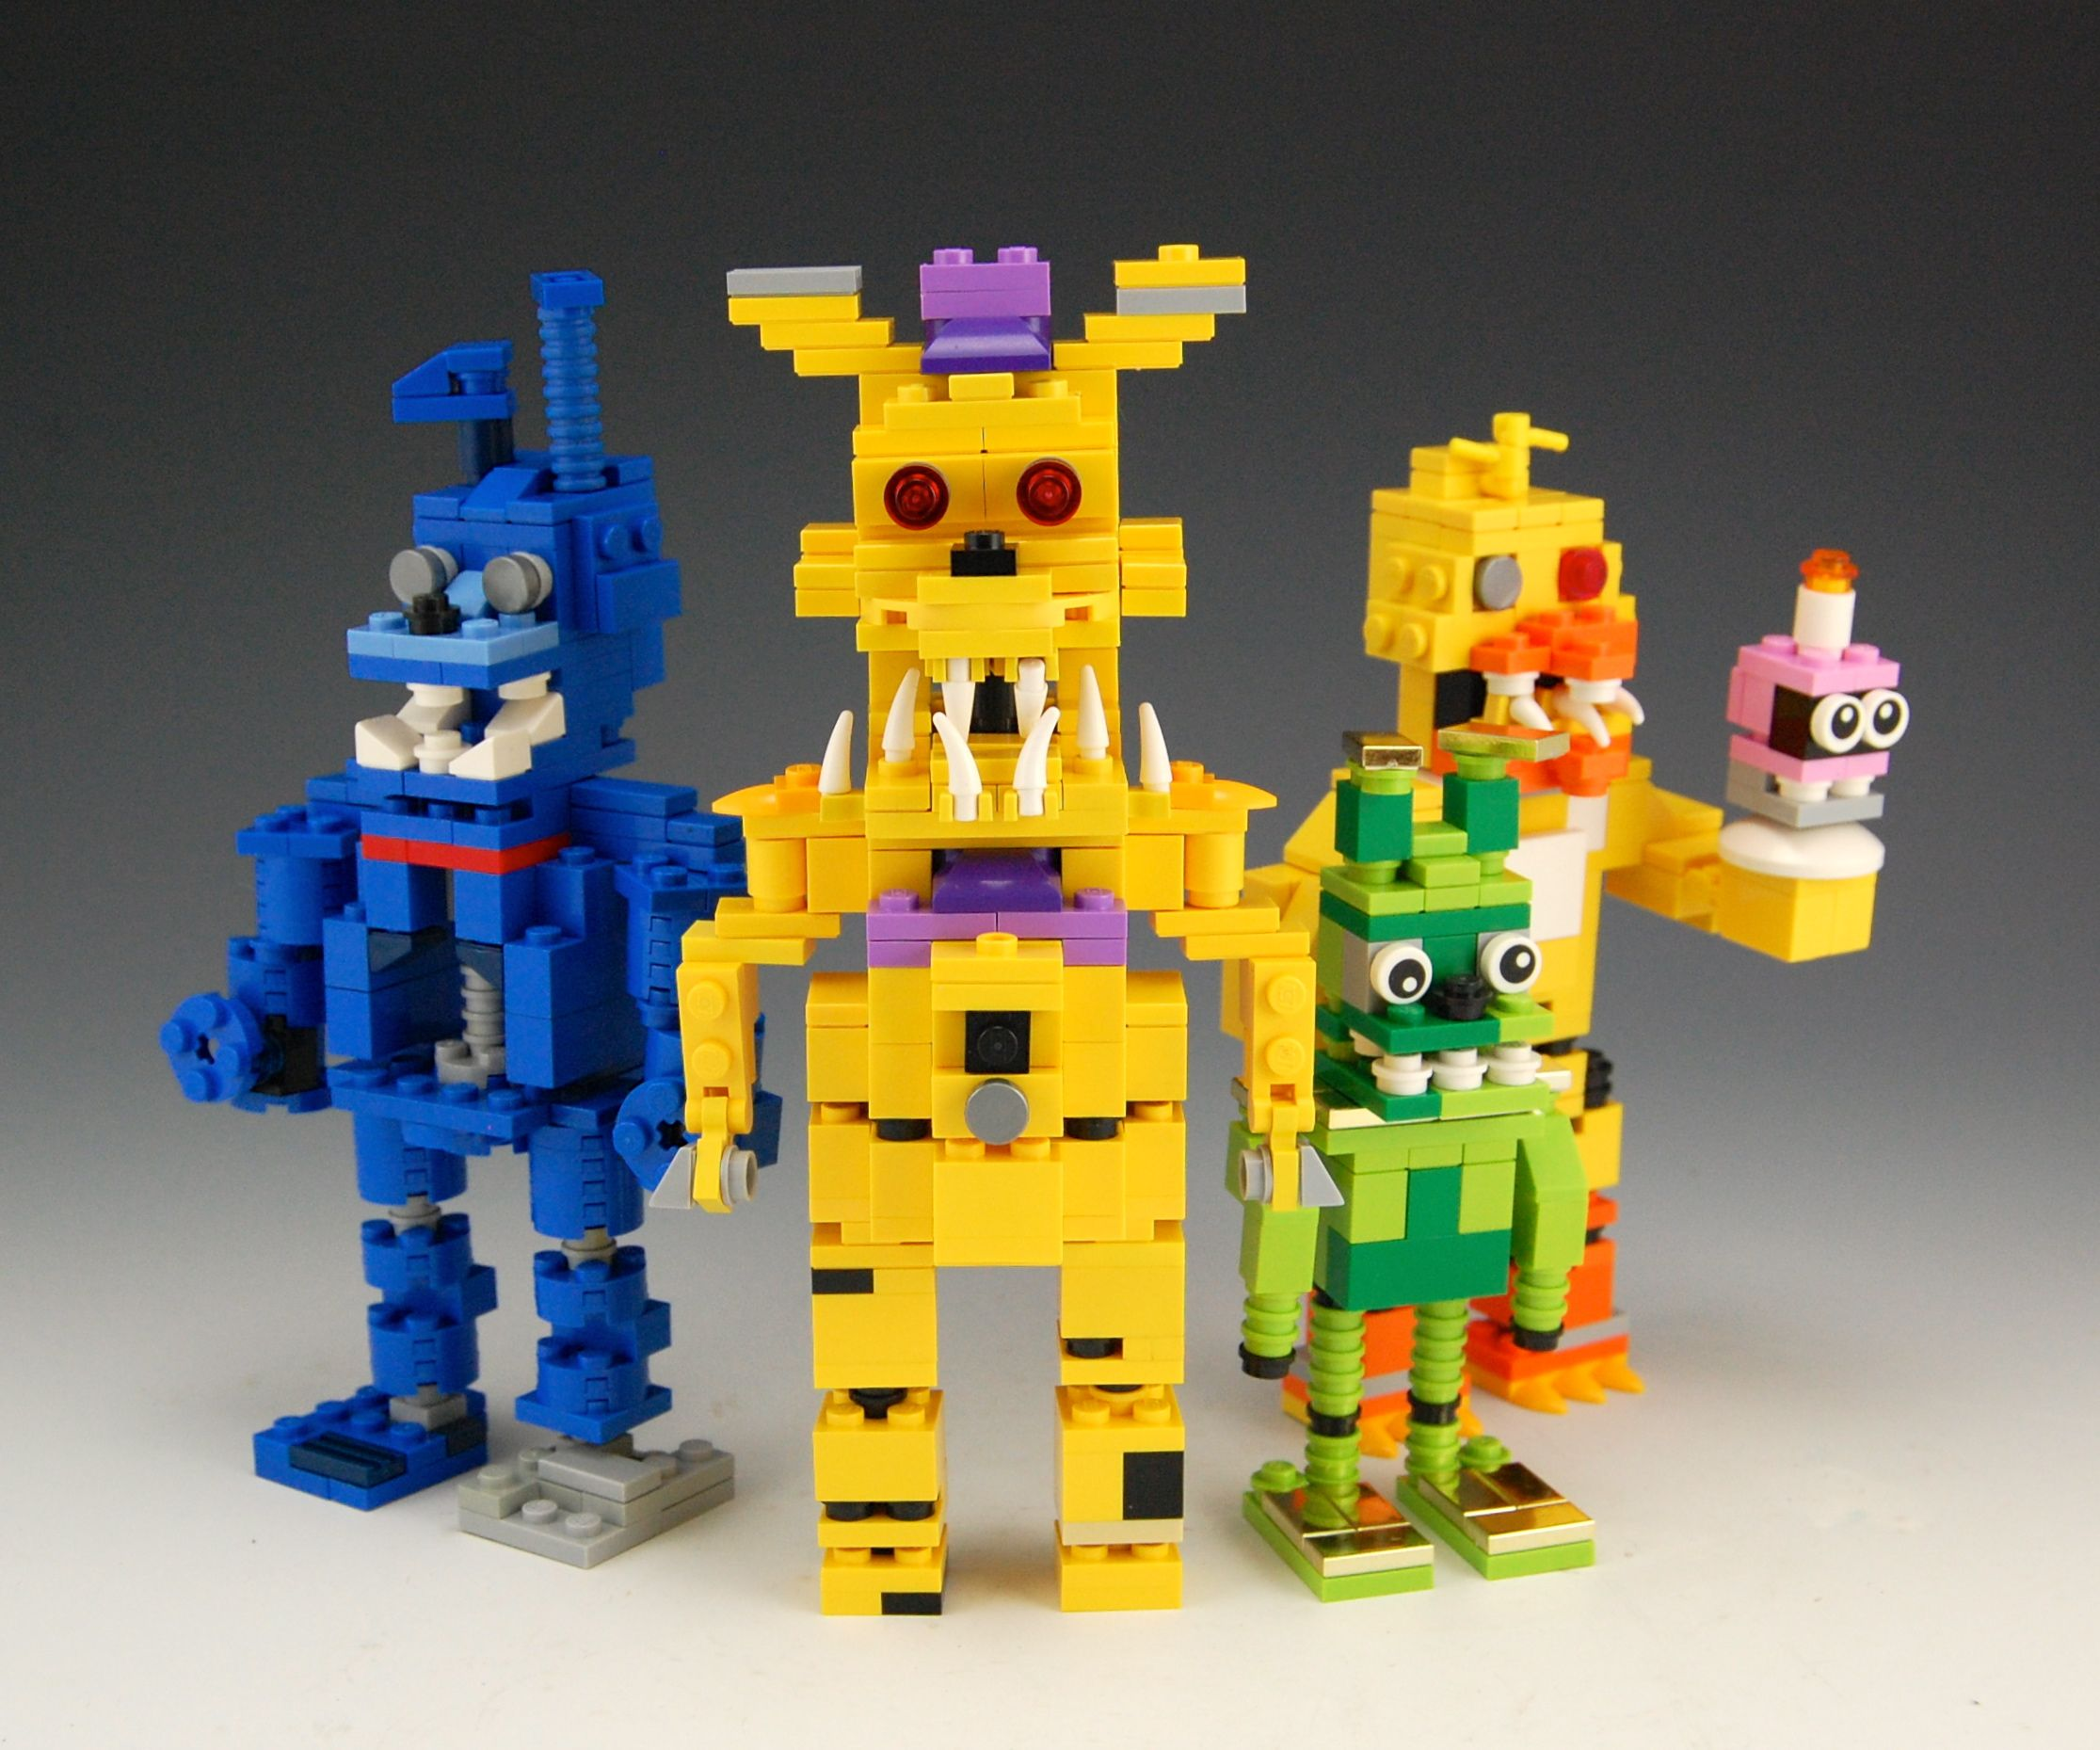 More five nights at freddy s construction sets coming soon - Lego Five Nights At Freddy S Creation By Brickbum